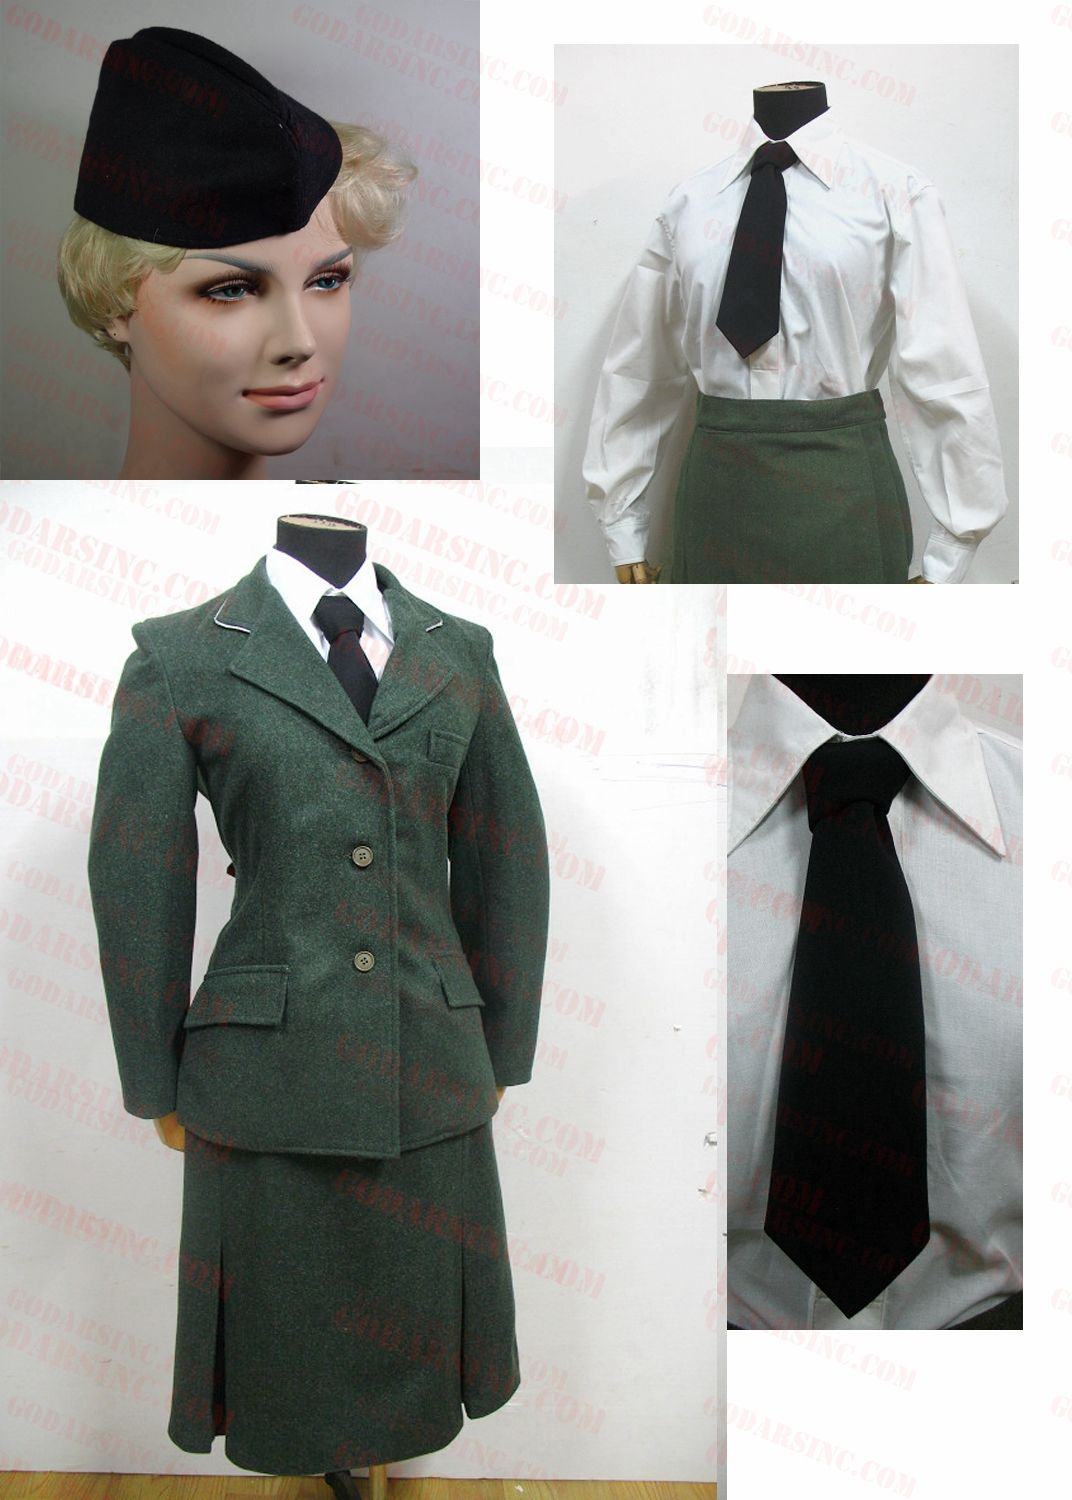 ww2 german wss helferin female uniform set wwii amp wwi